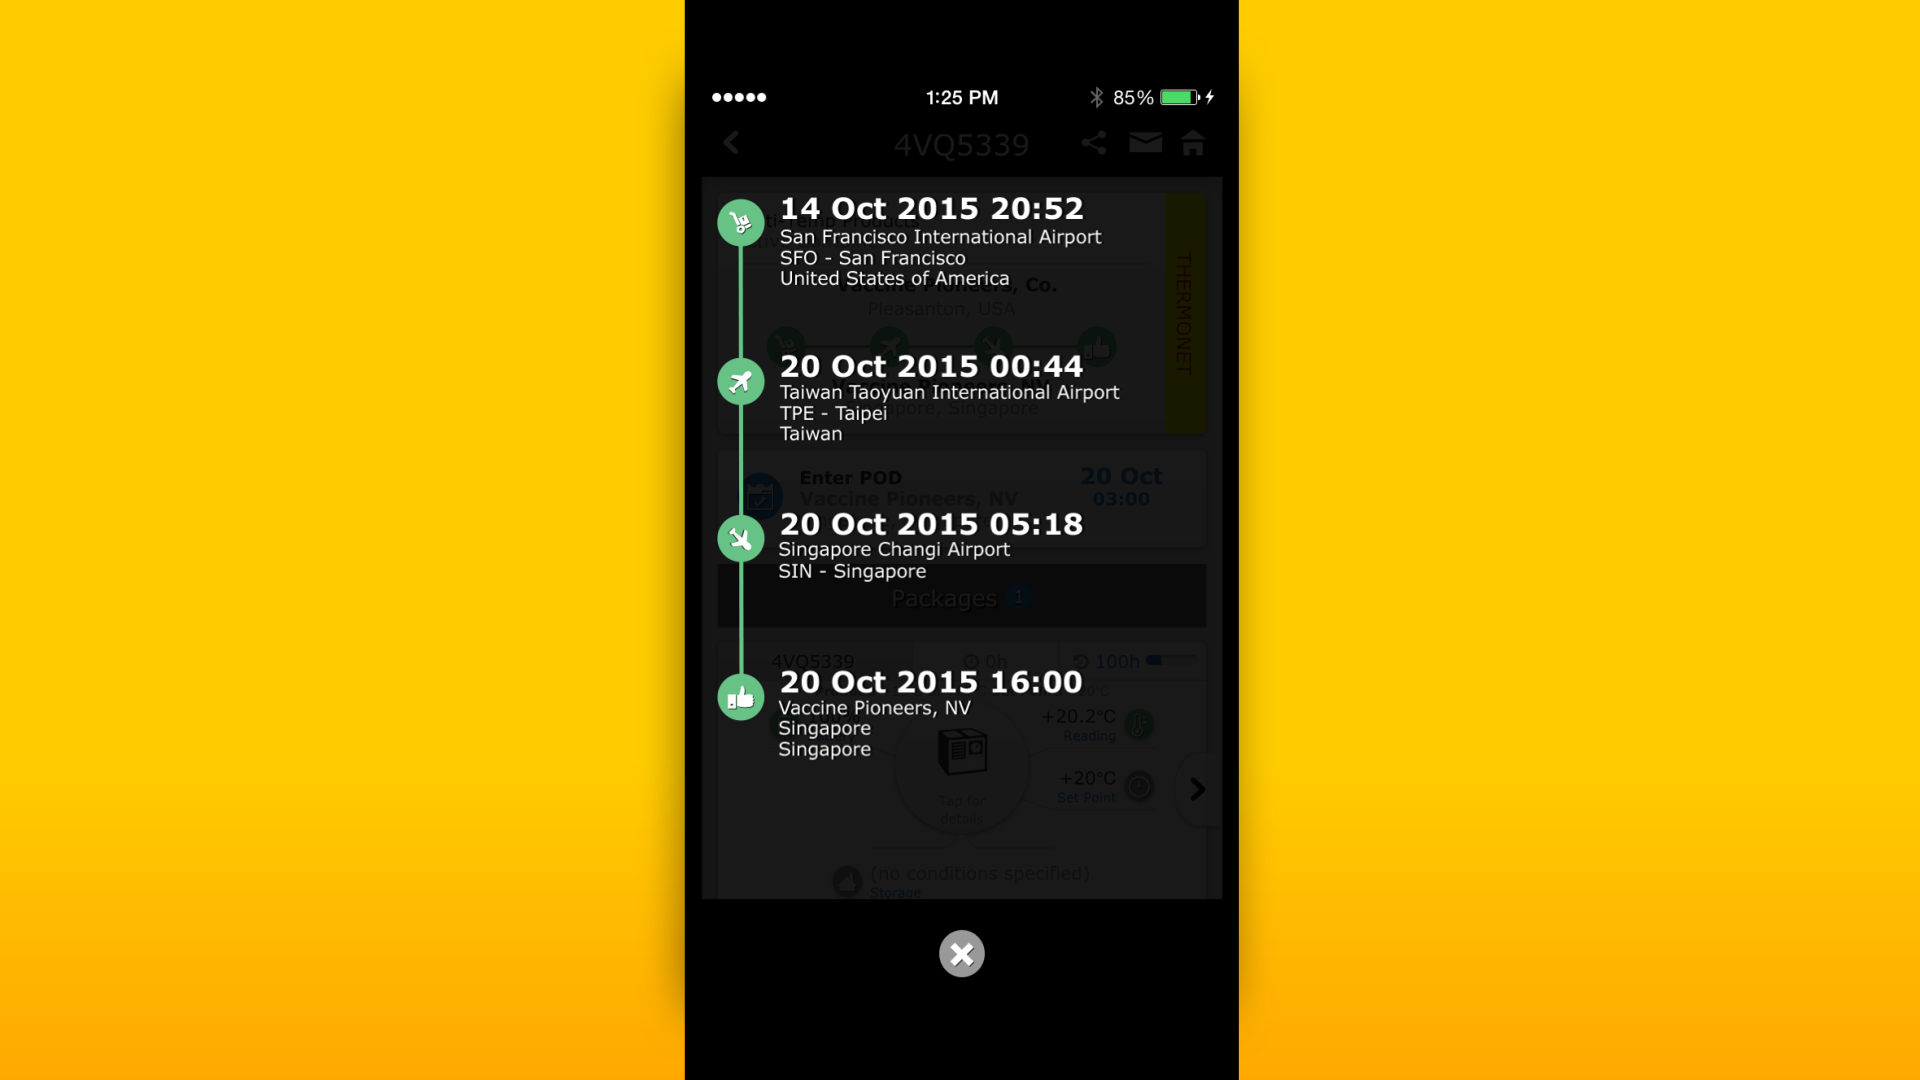 New DHL app increases cold chain visibility